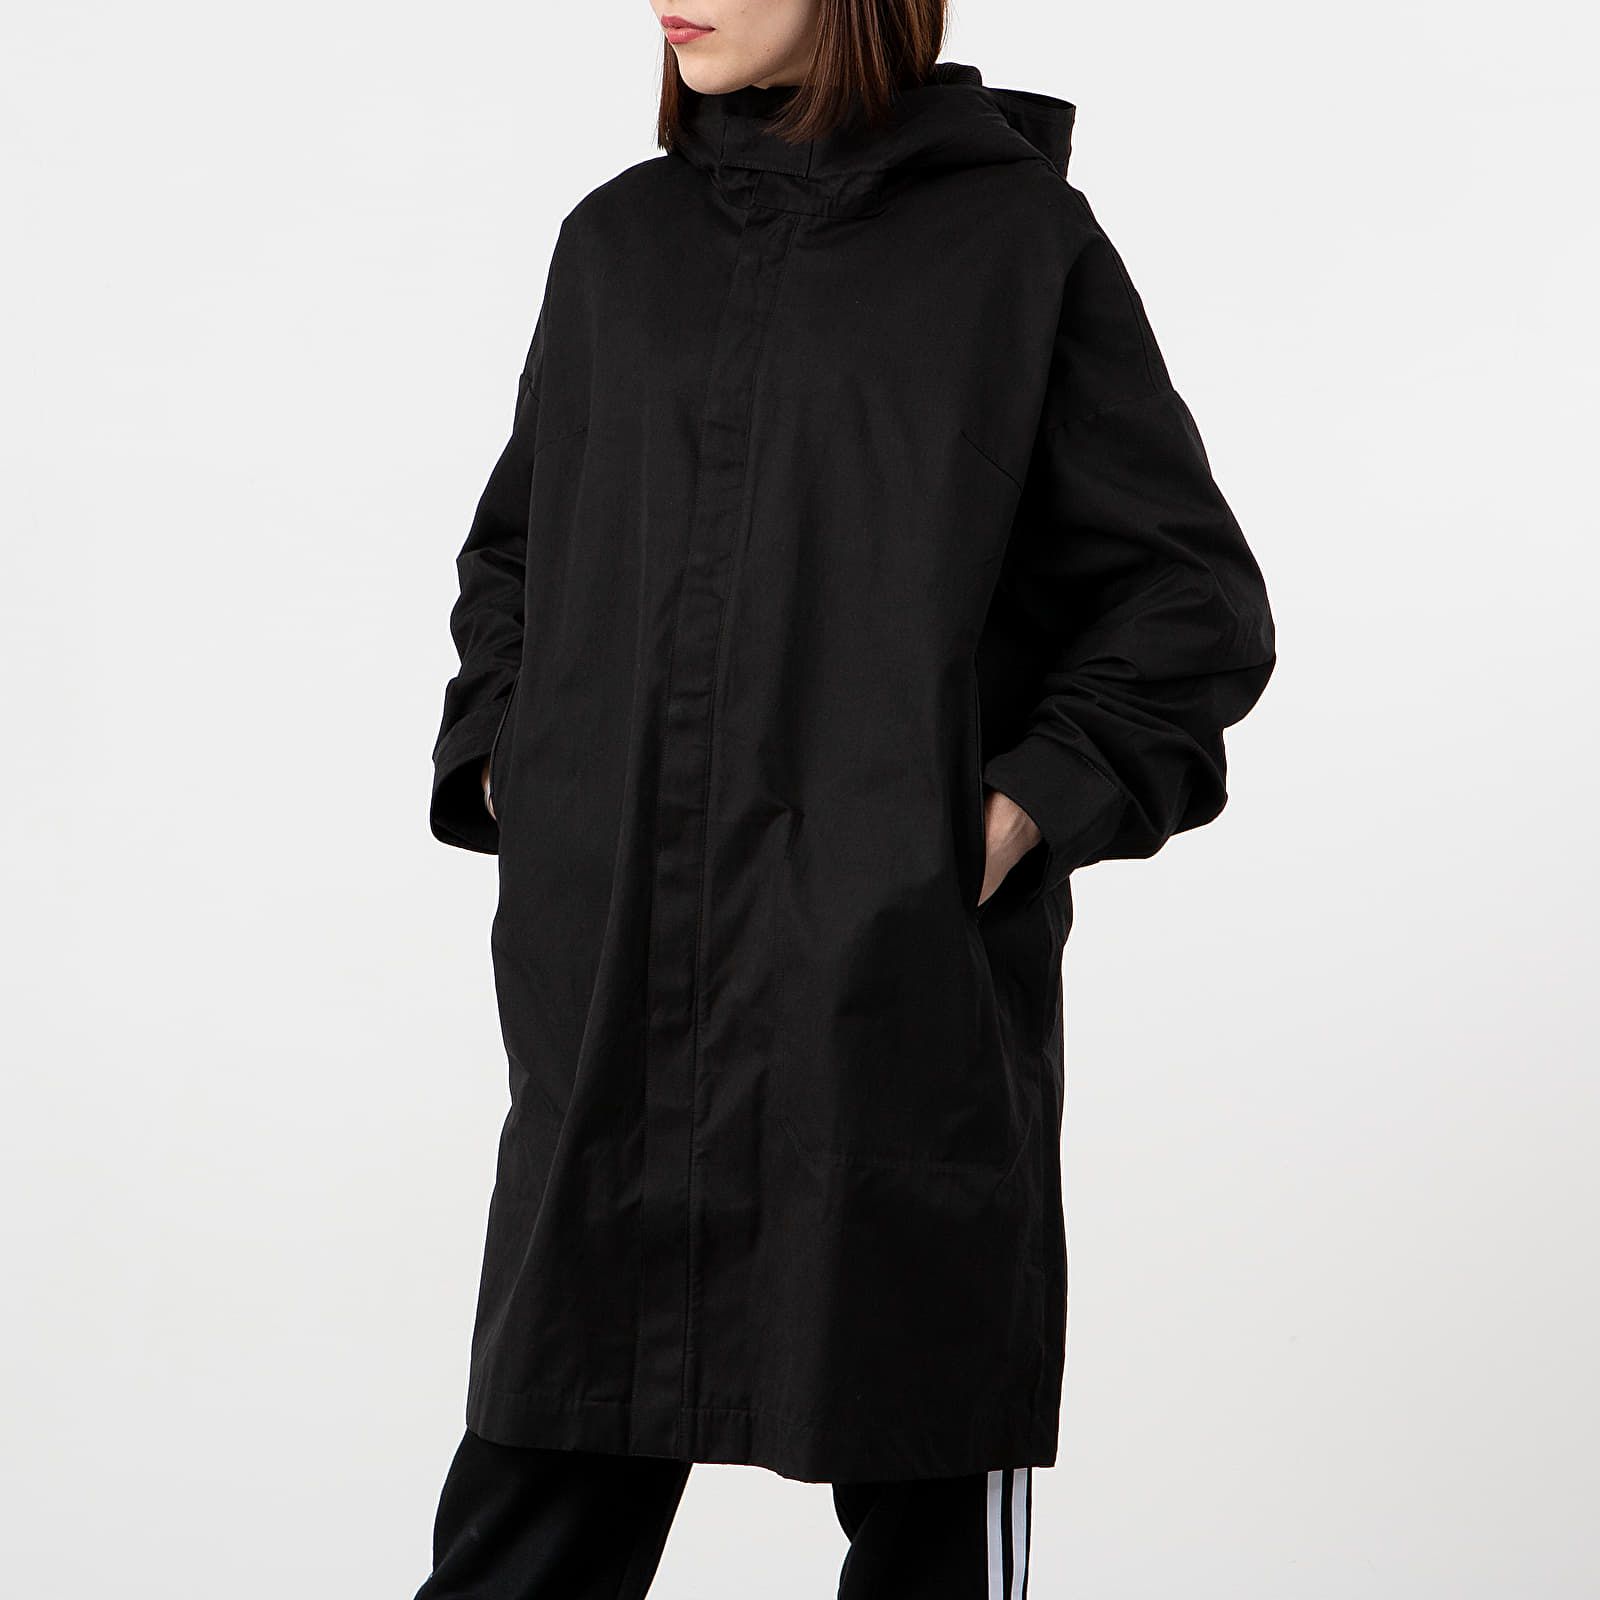 Jackets Y-3 CL Parka Black